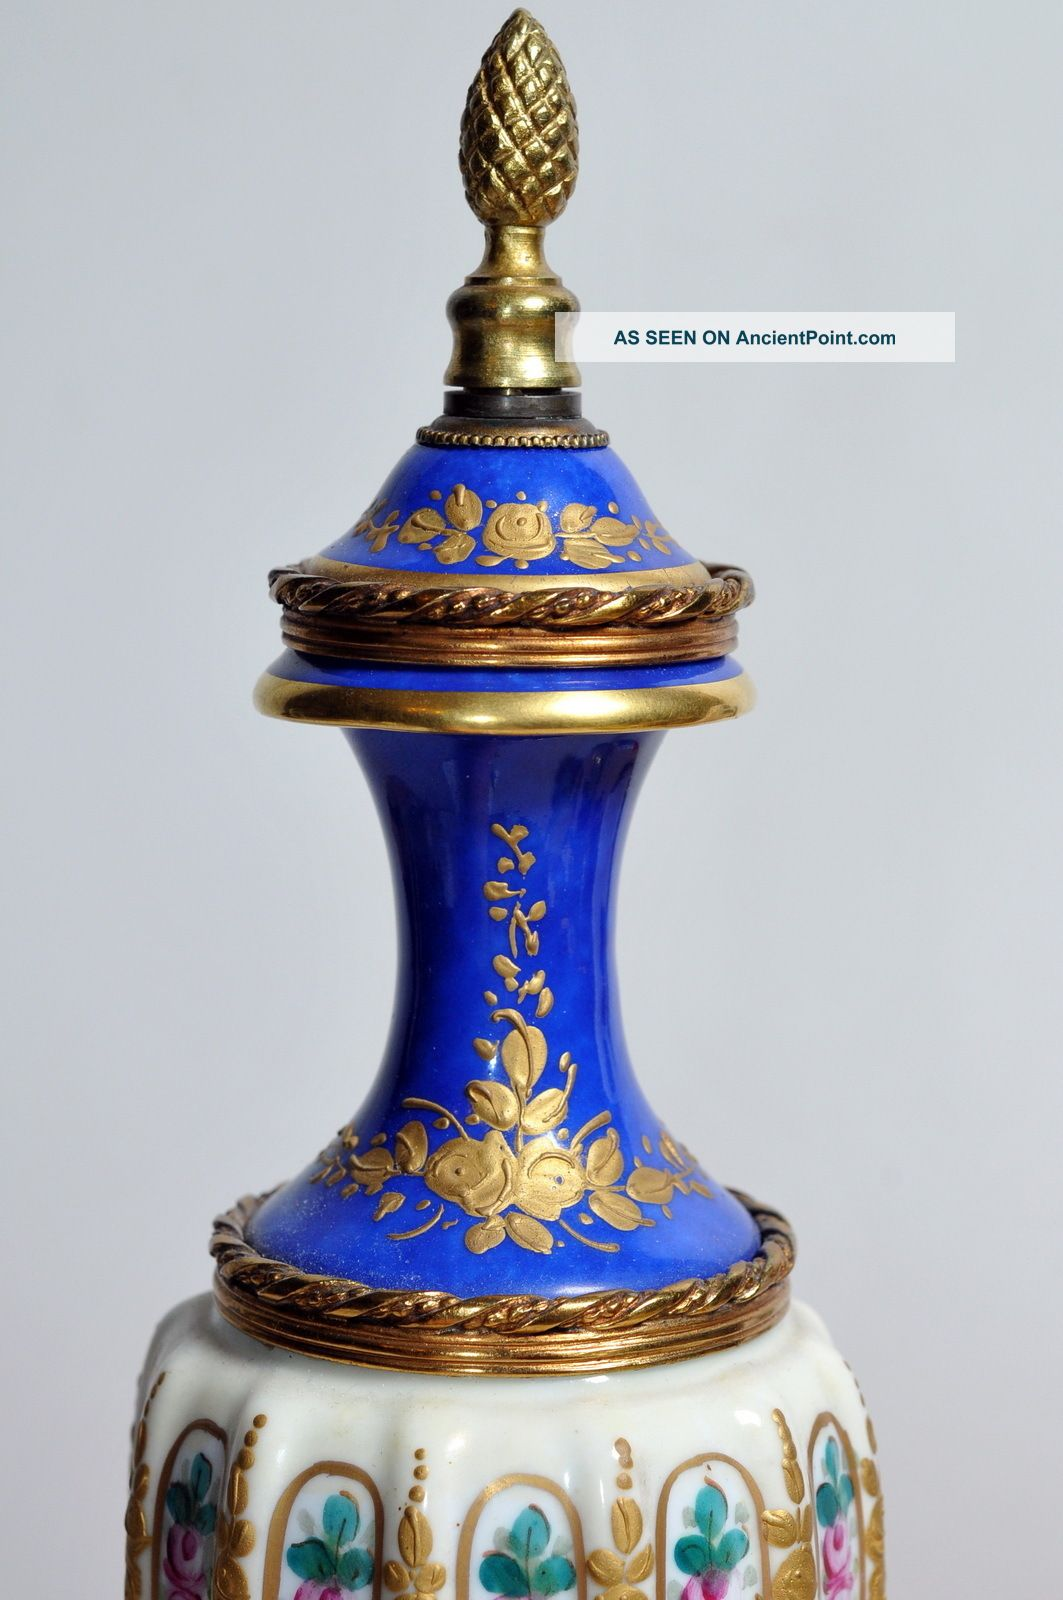 Late 1800s antique french sevres twisted porcelain gilt bronze late 1800s antique french sevres twisted porcelain gilt bronze urn vase reviewsmspy